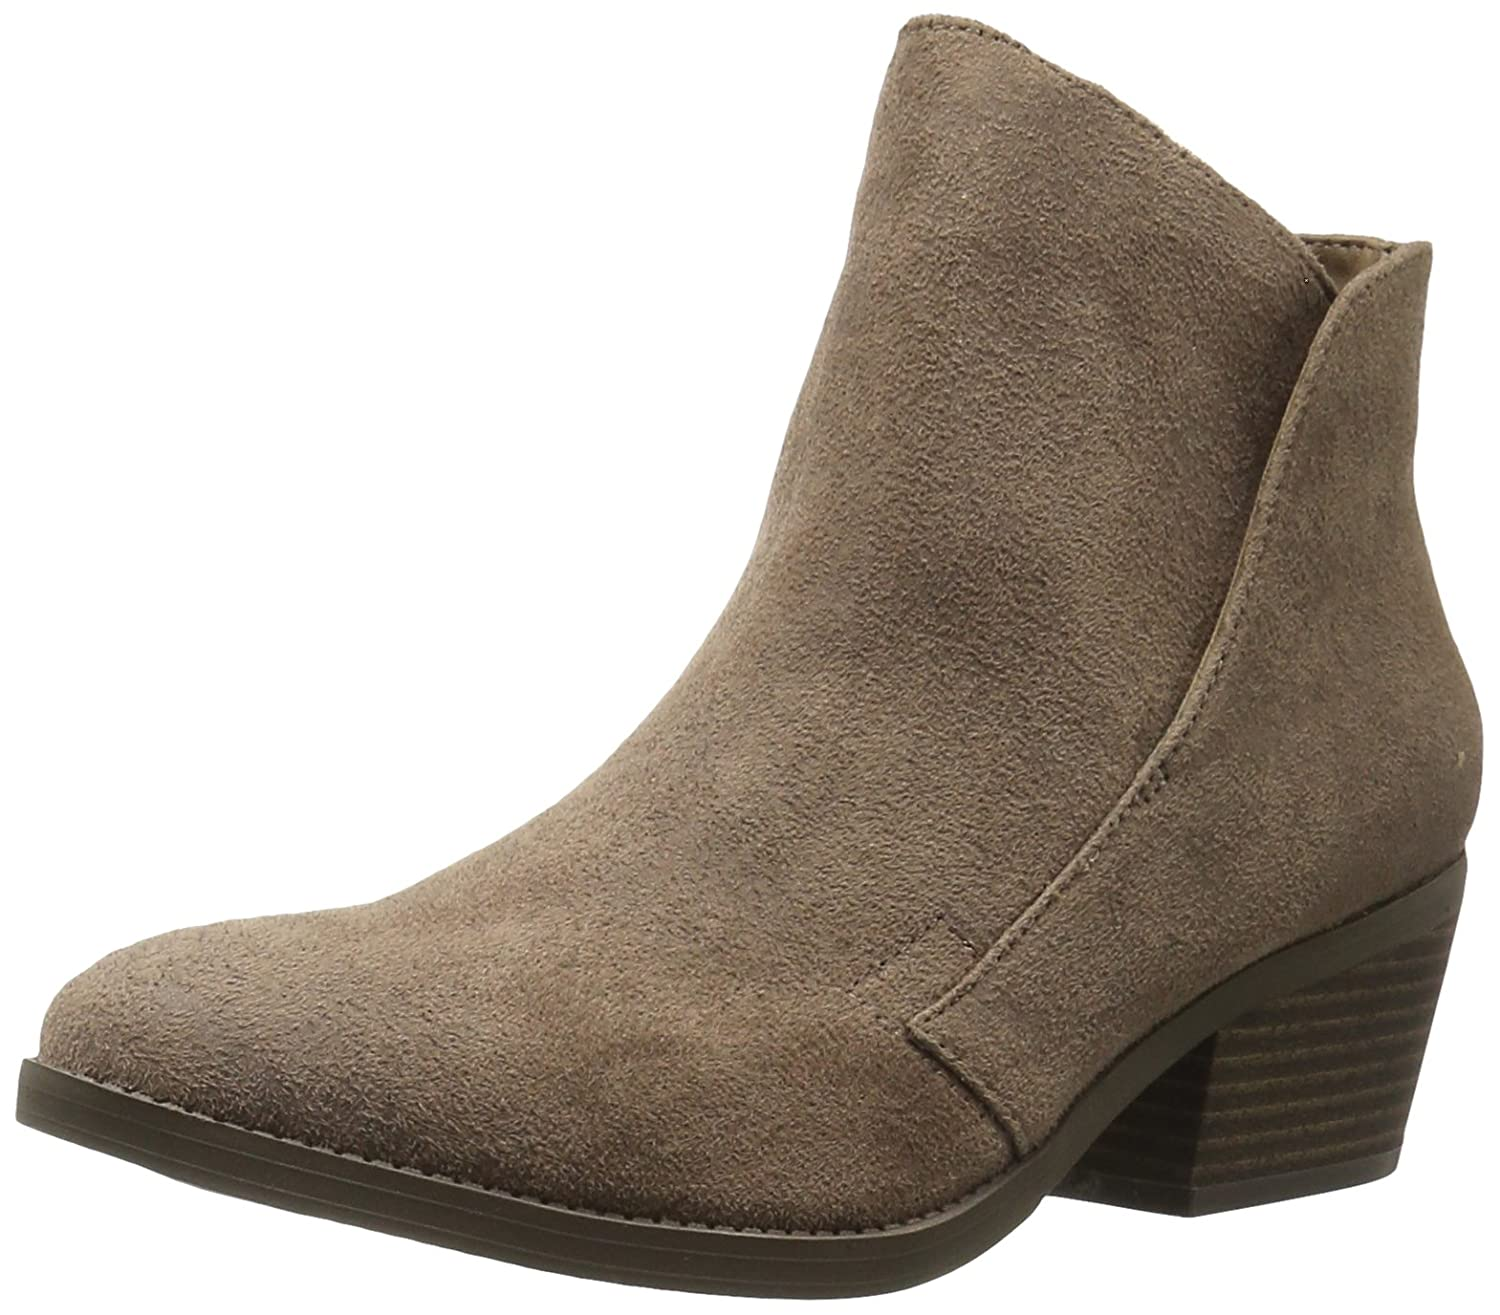 Madden Girl Women's Boloo Ankle Bootie